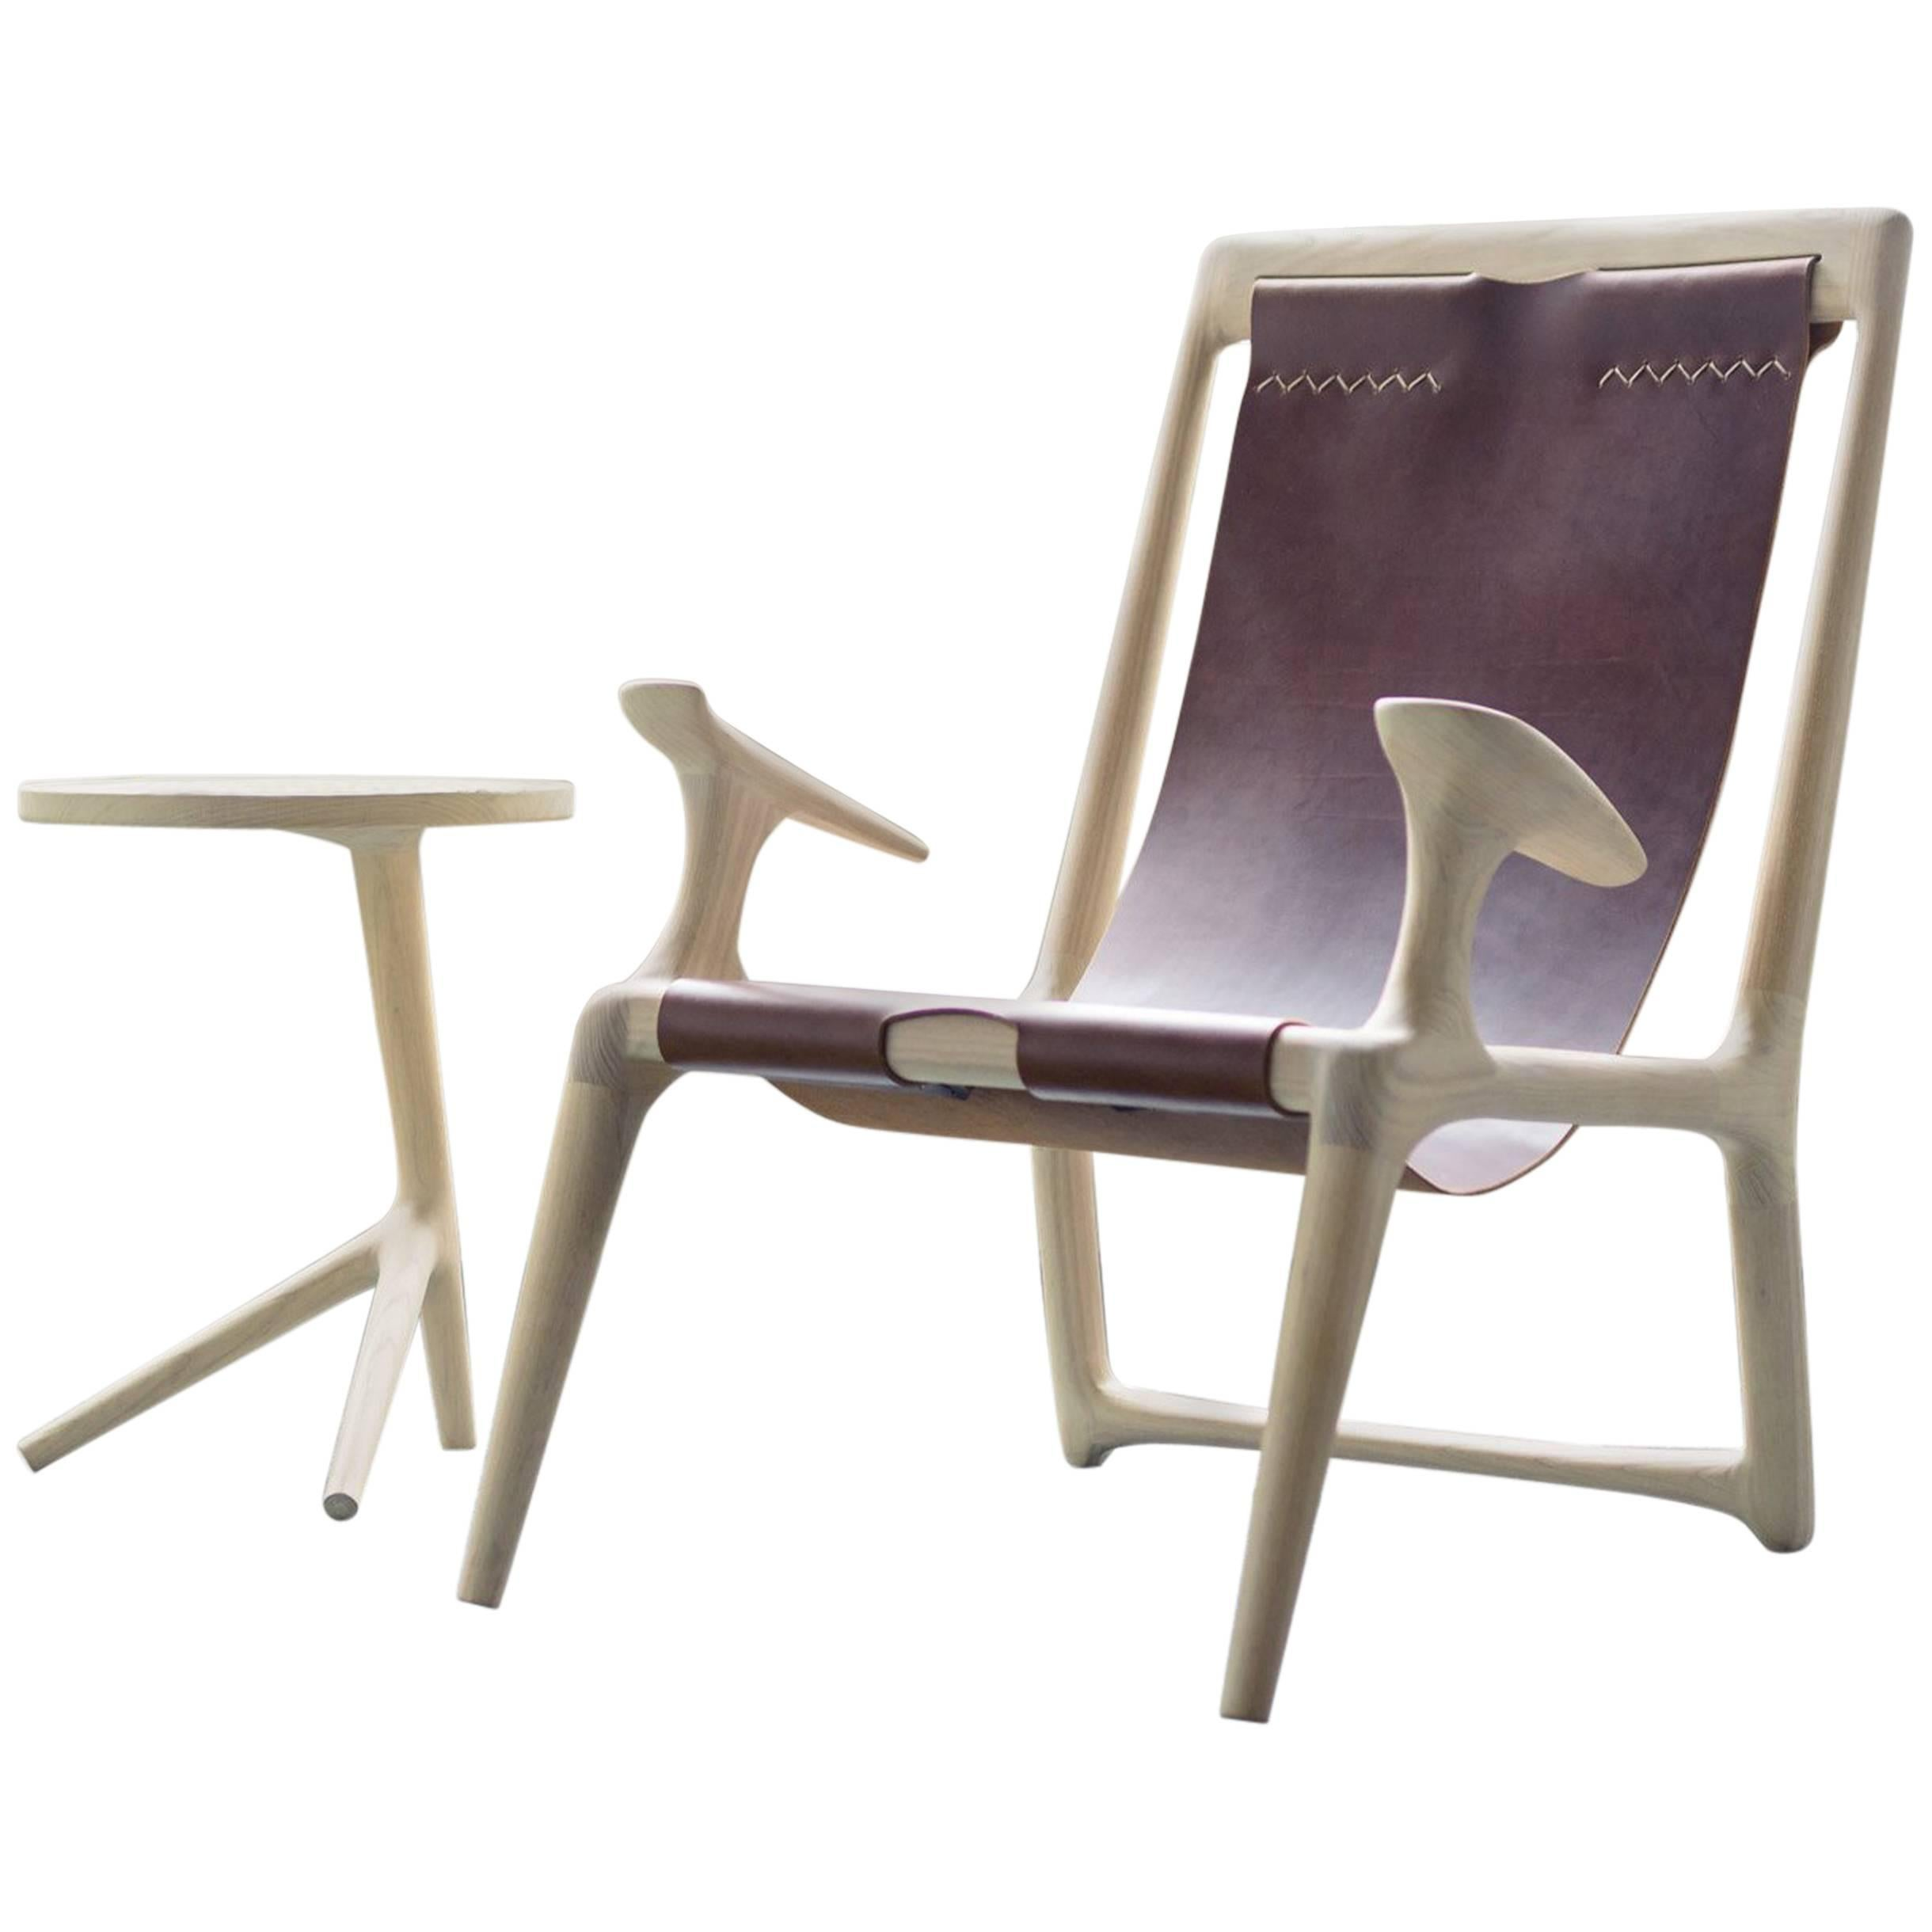 Sling Armchair made from White Ash and Brown Leather - Fernweh Woodworking